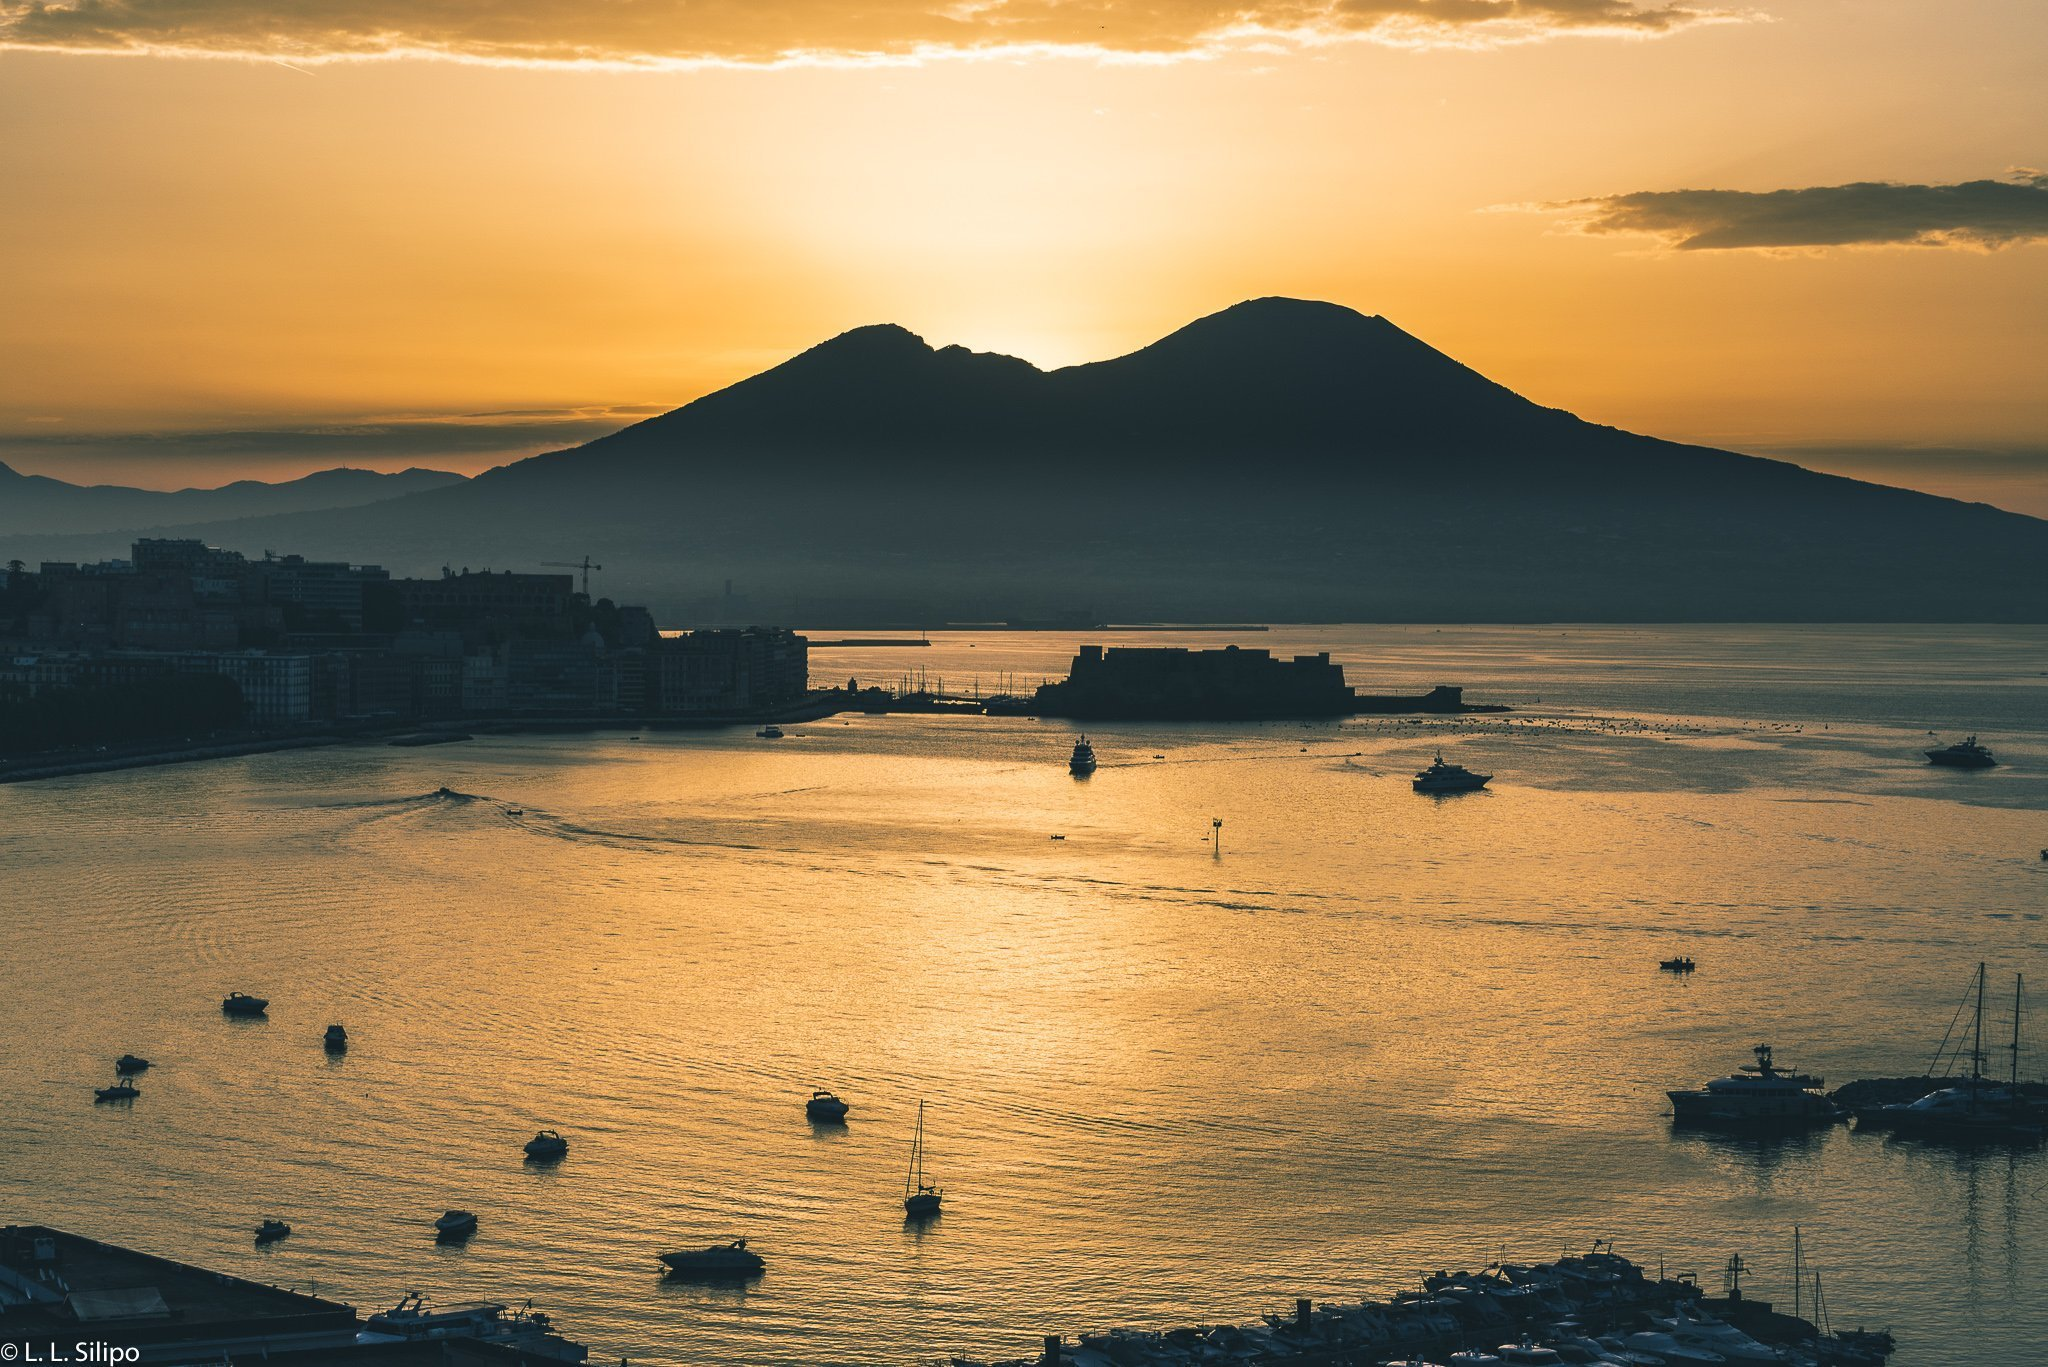 Landscape photography with 50mm lens, Napoli, background, bay, beautiful, city, coast, europe, italian, italy, landscape, mediterranean, morning, mountain, naples, nature, scenic, sea, sky, summer, sunrise, sunset, tourism, travel, vacation, vesuvio, vesuvius, view, volcano, water, world